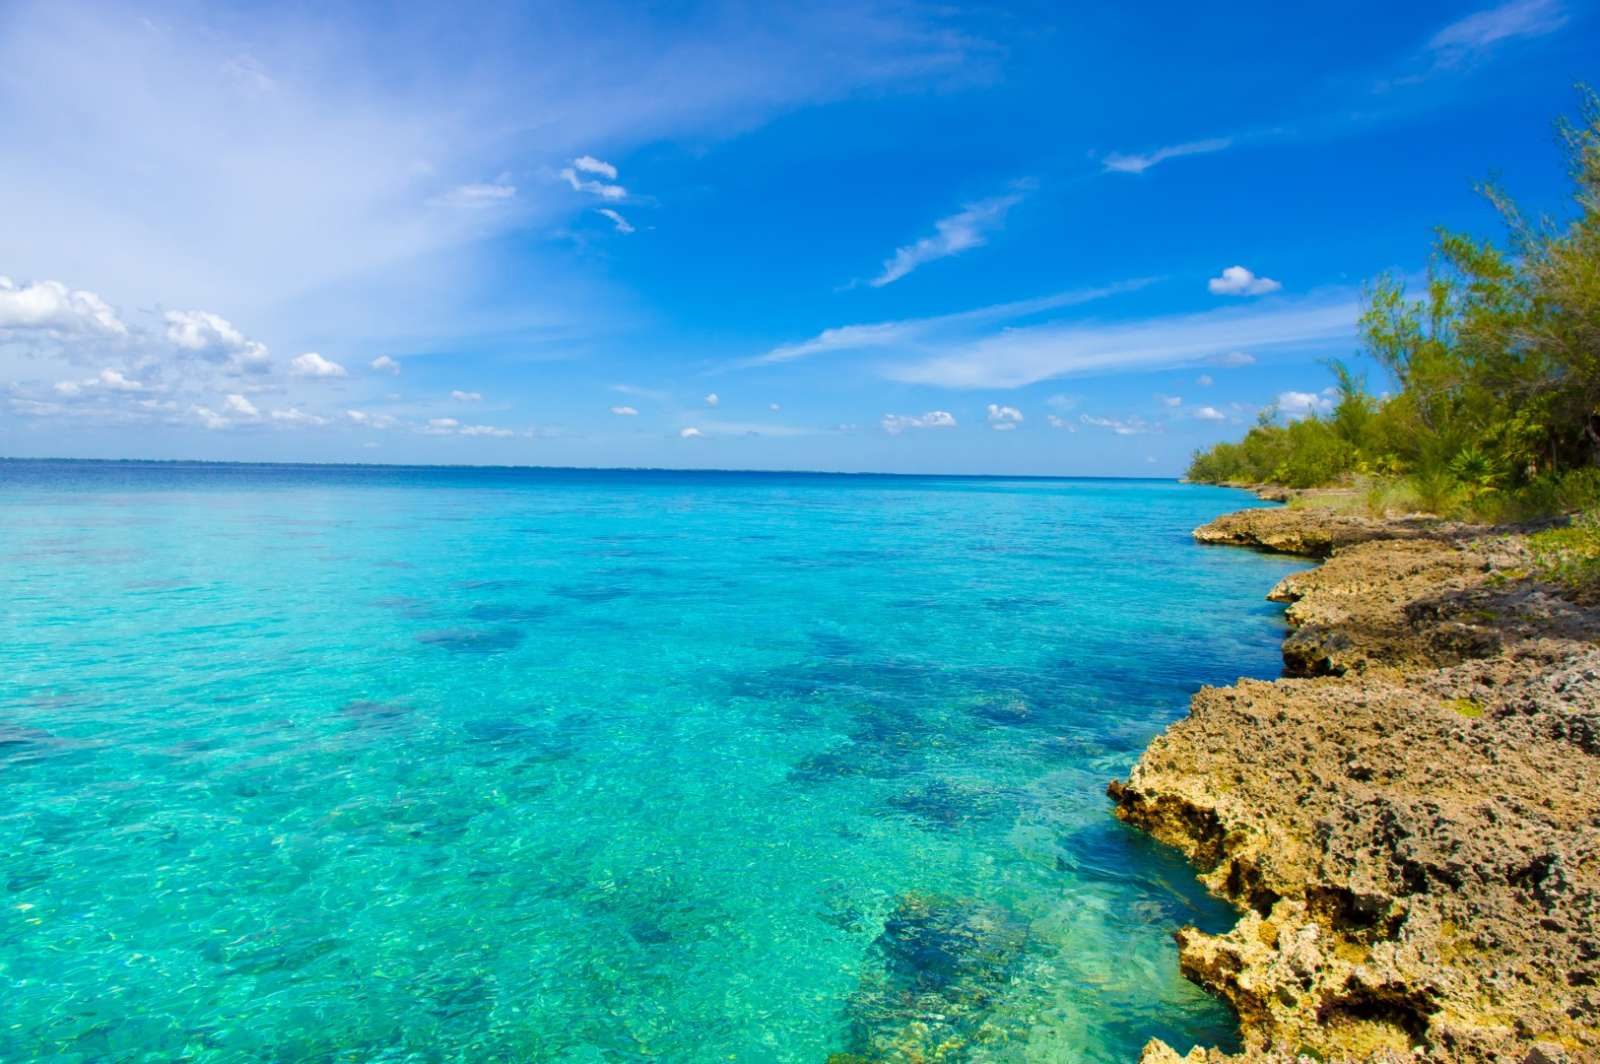 Snorkelling opportunities in Zapata & Bay of Pigs